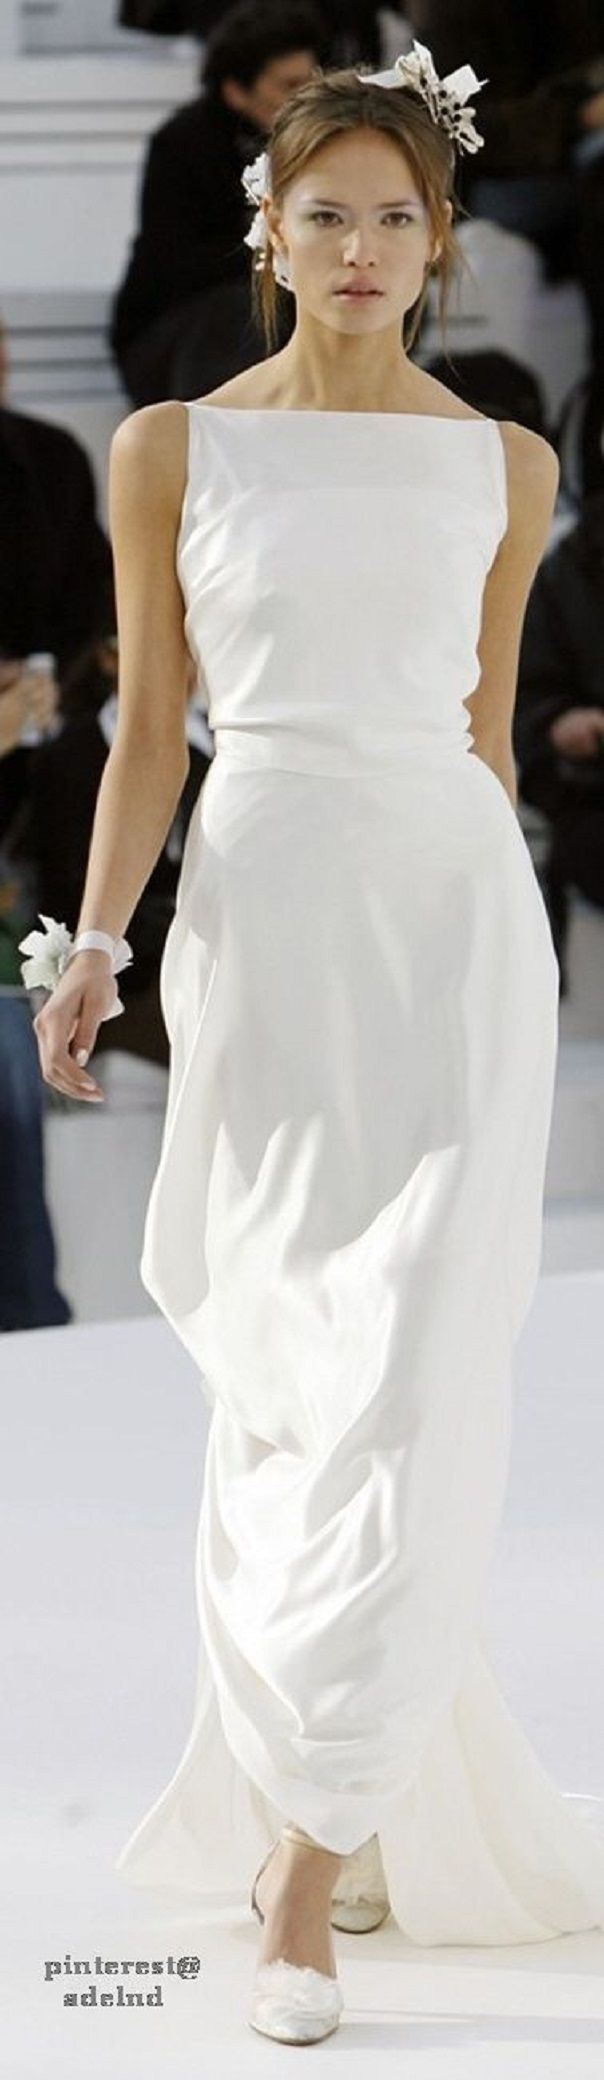 Attractive Coco Chanel Wedding Dress Model - Wedding Plan Ideas ...